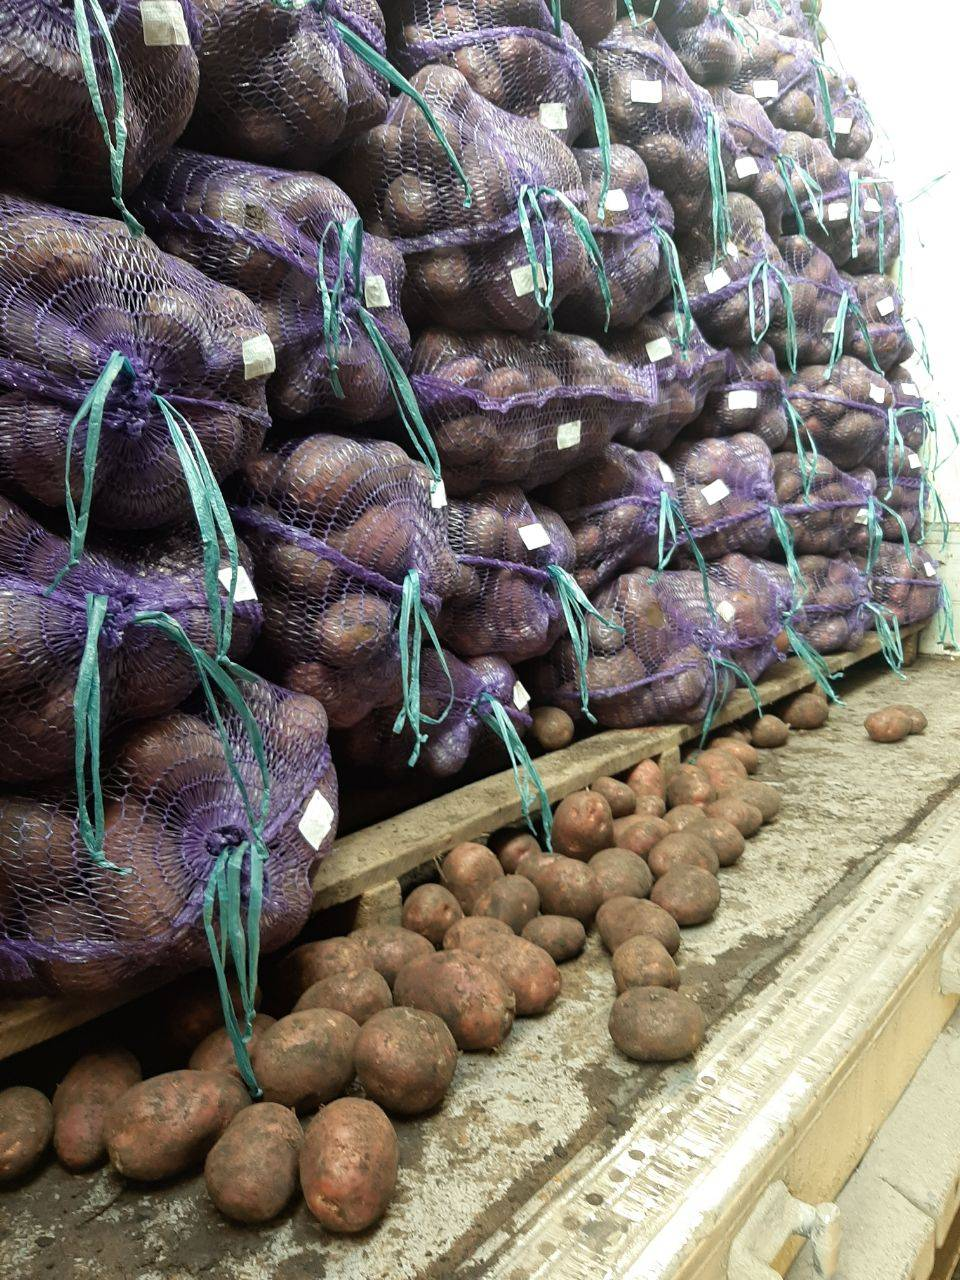 <p>I will buy potatoes in bulk. At least 80 tons per week</p>